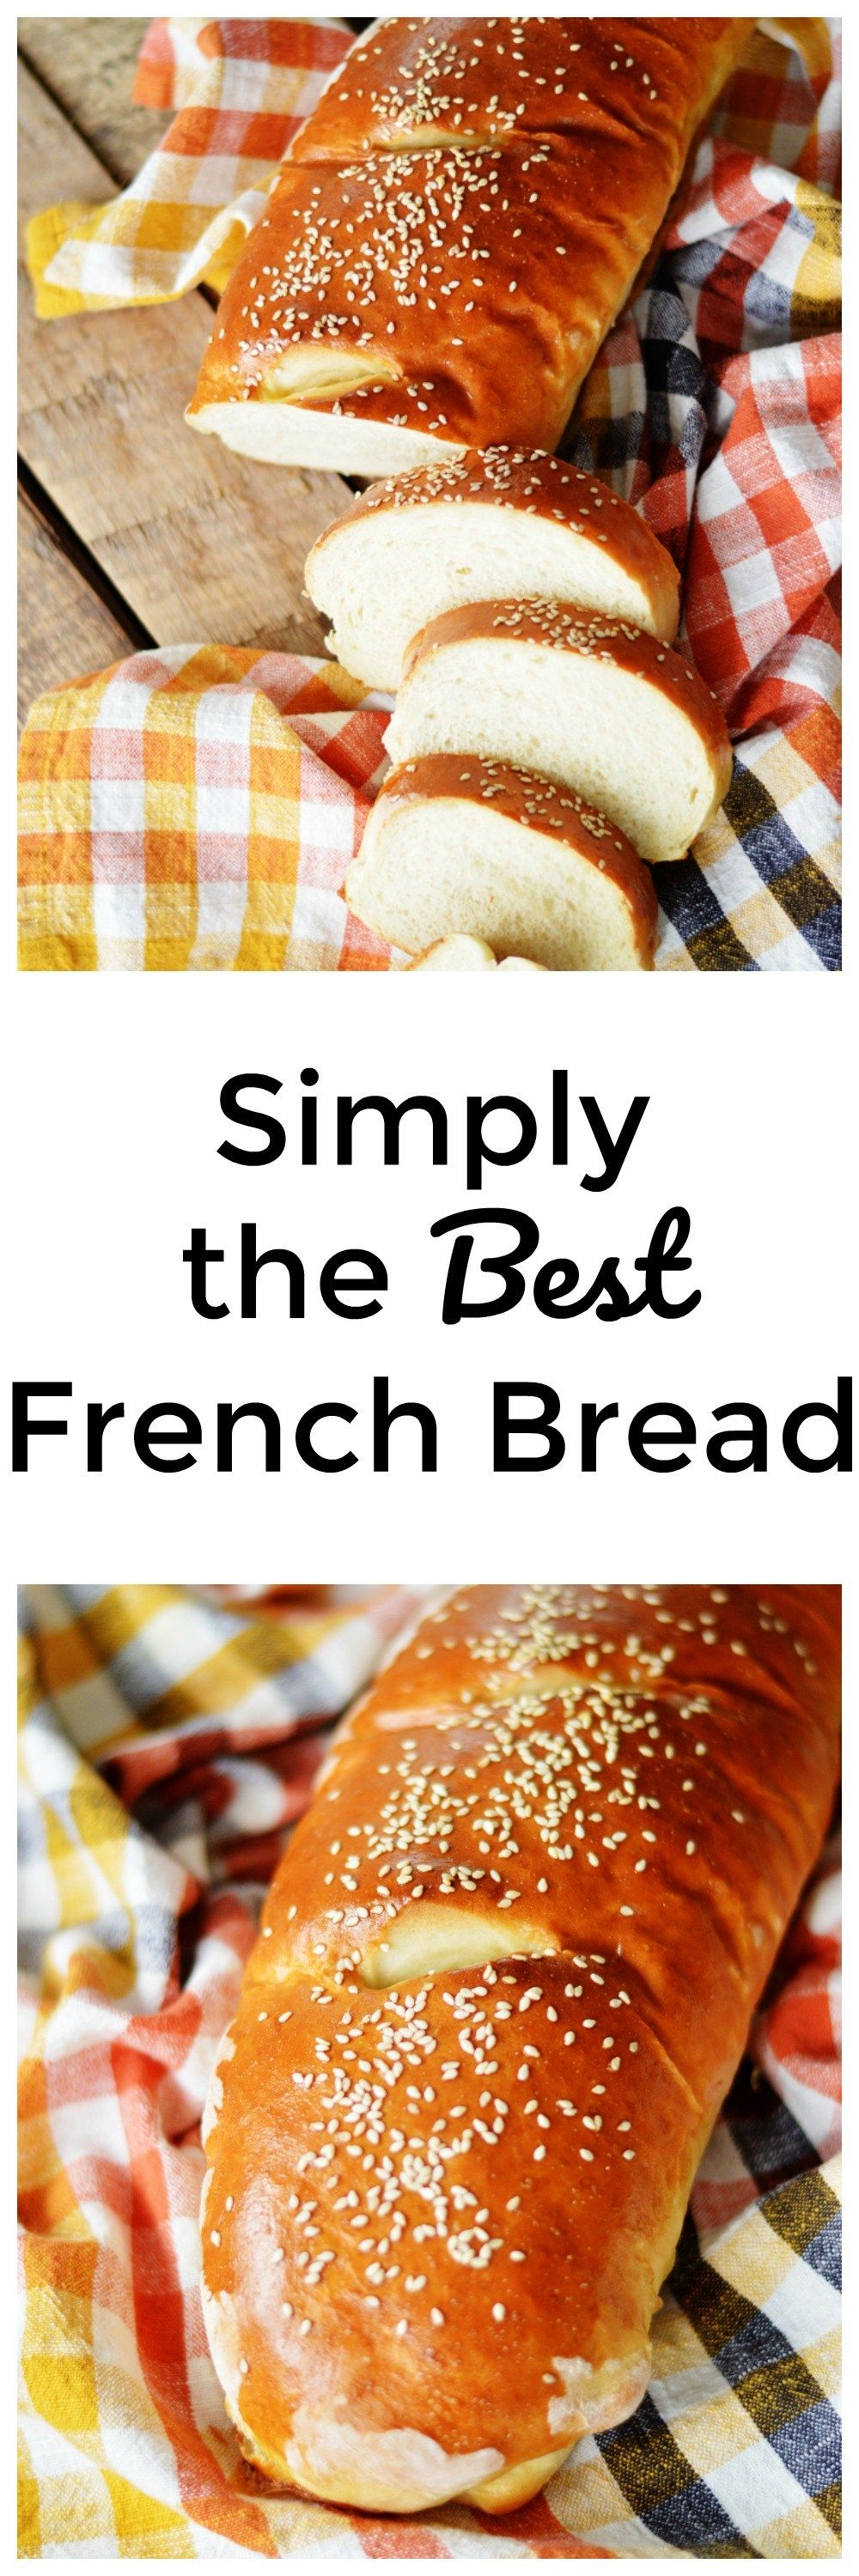 Simply the Best French Bread | Recipe | French bread ...